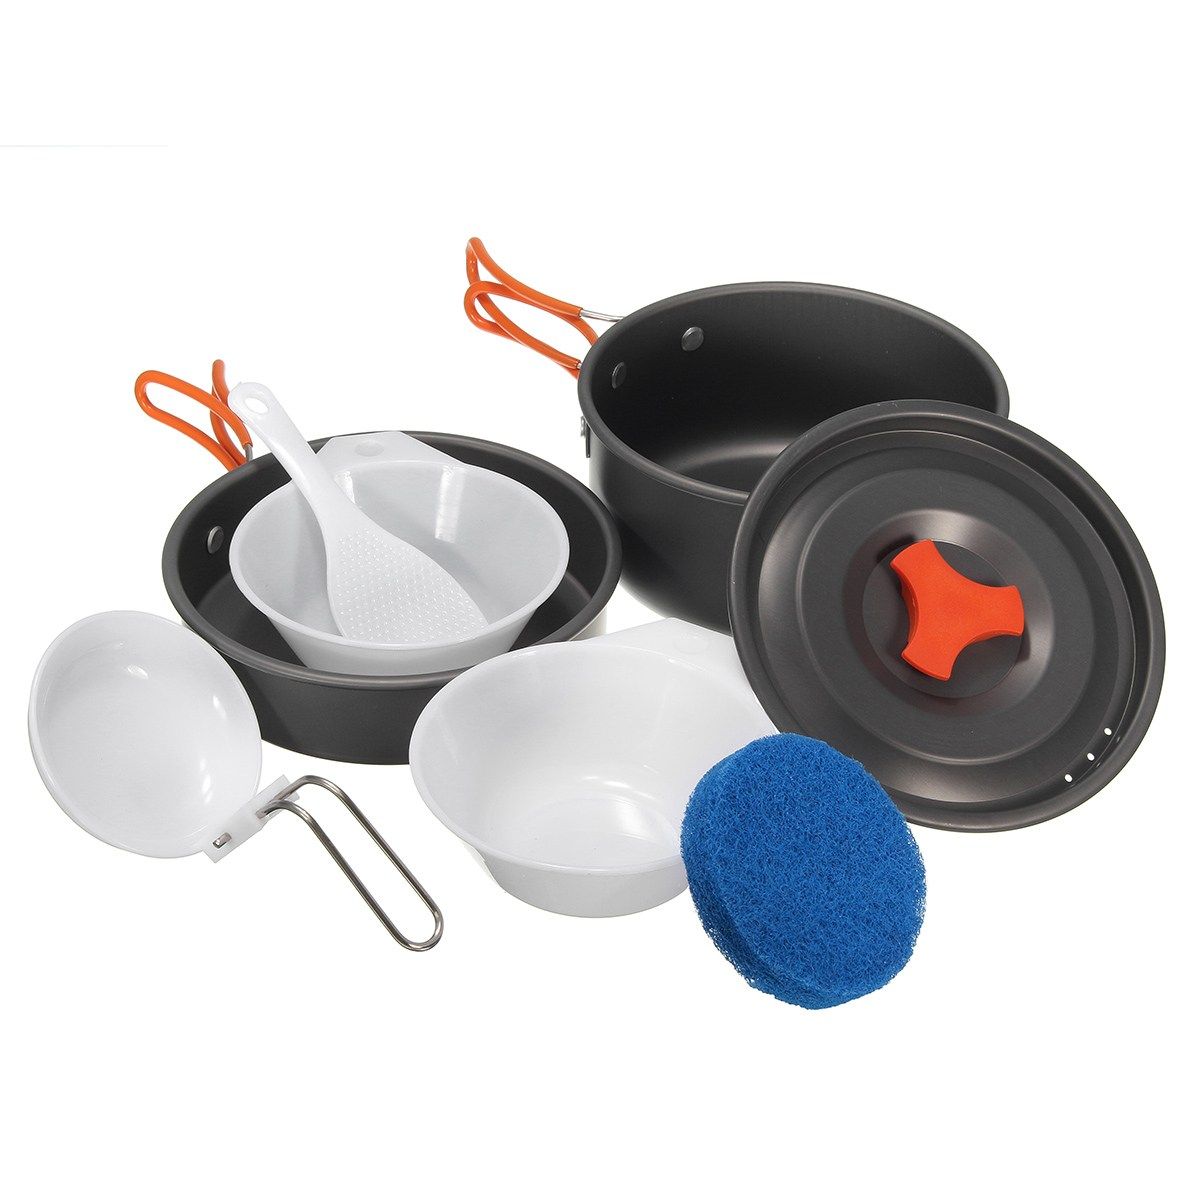 Portable 8Pcs Portable Outdoor Cooking Set Camping Hiking Cookware travel kit Picnic equipment Bowl Pot Pan outdoor tableware